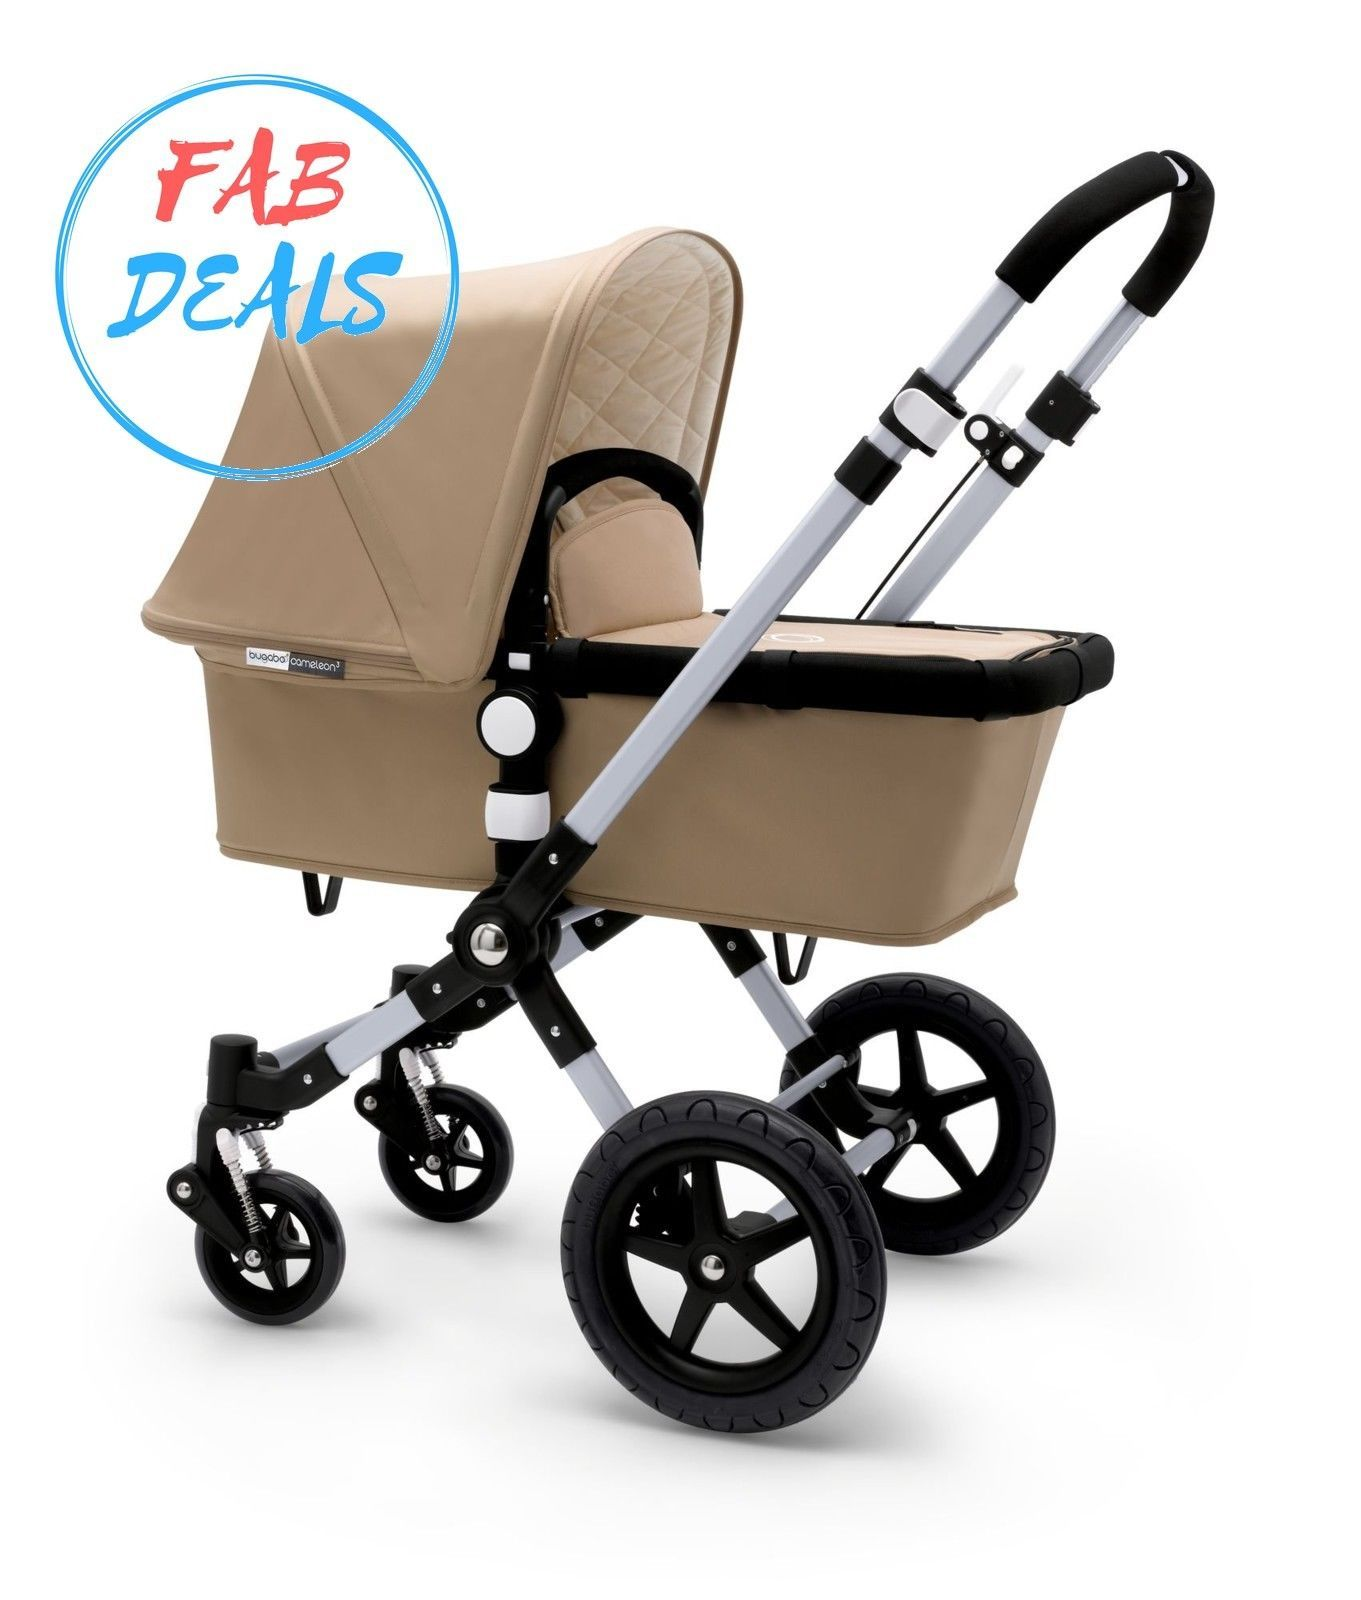 New ORIGINAL Bugaboo Cameleon Classic Collection, Sand